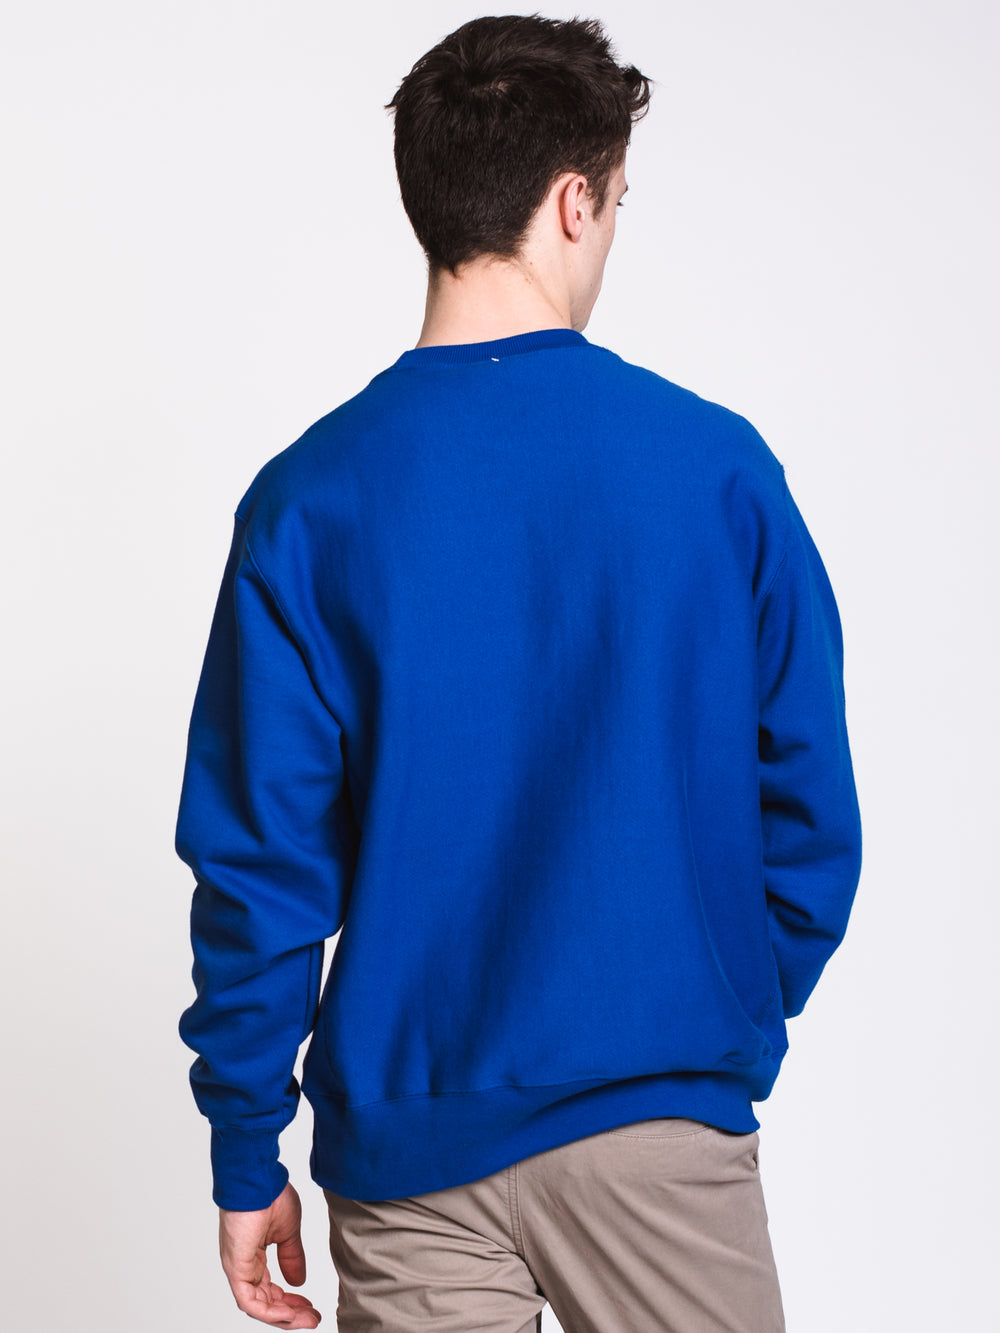 MENS REV WEAVE CREW FLEECE - ROYAL